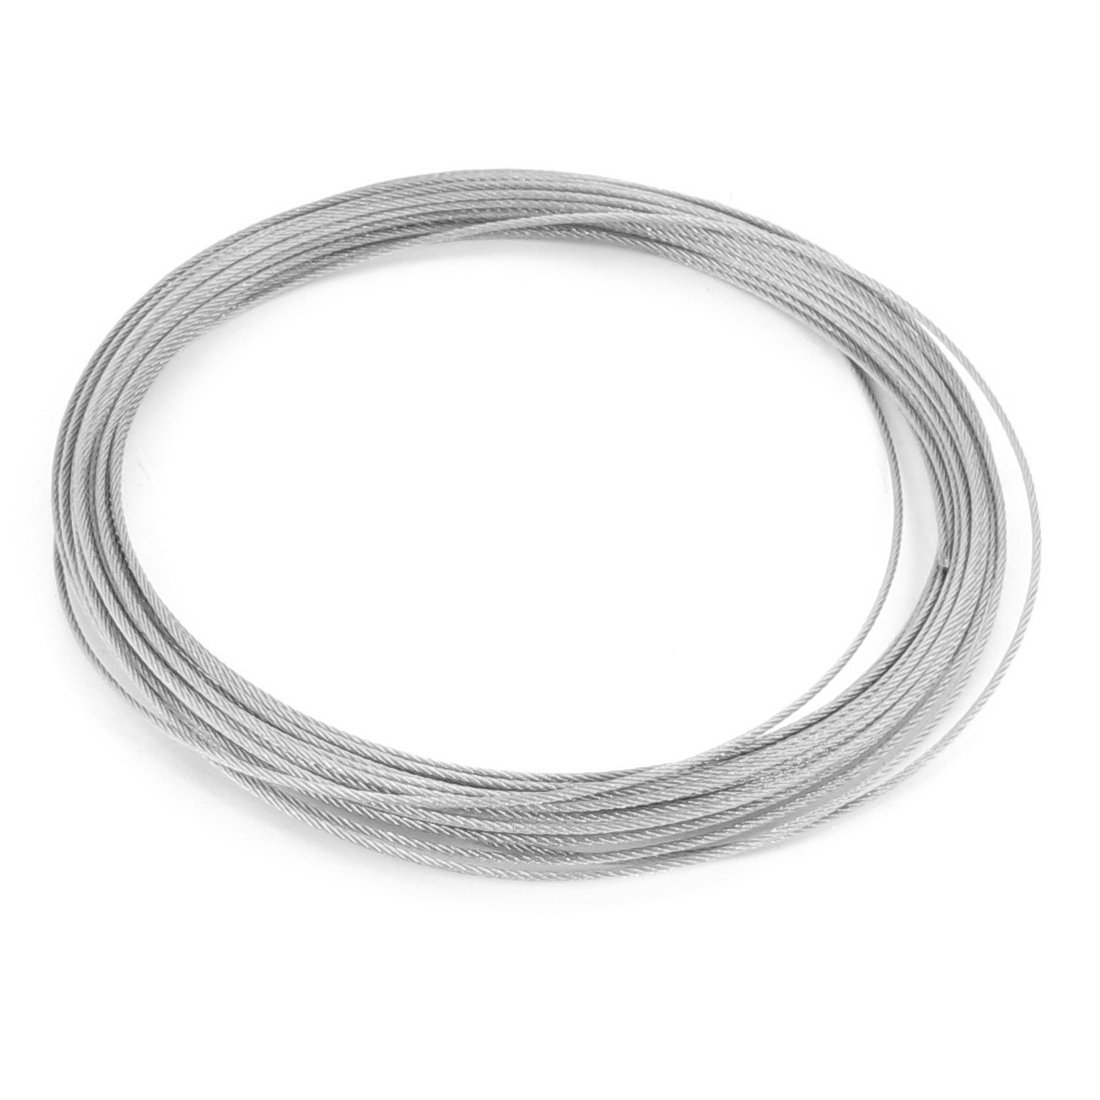 Hoisting 7x7 1.2mm Diameter Stainless Steel Flexible Wire Rope 32.8Ft